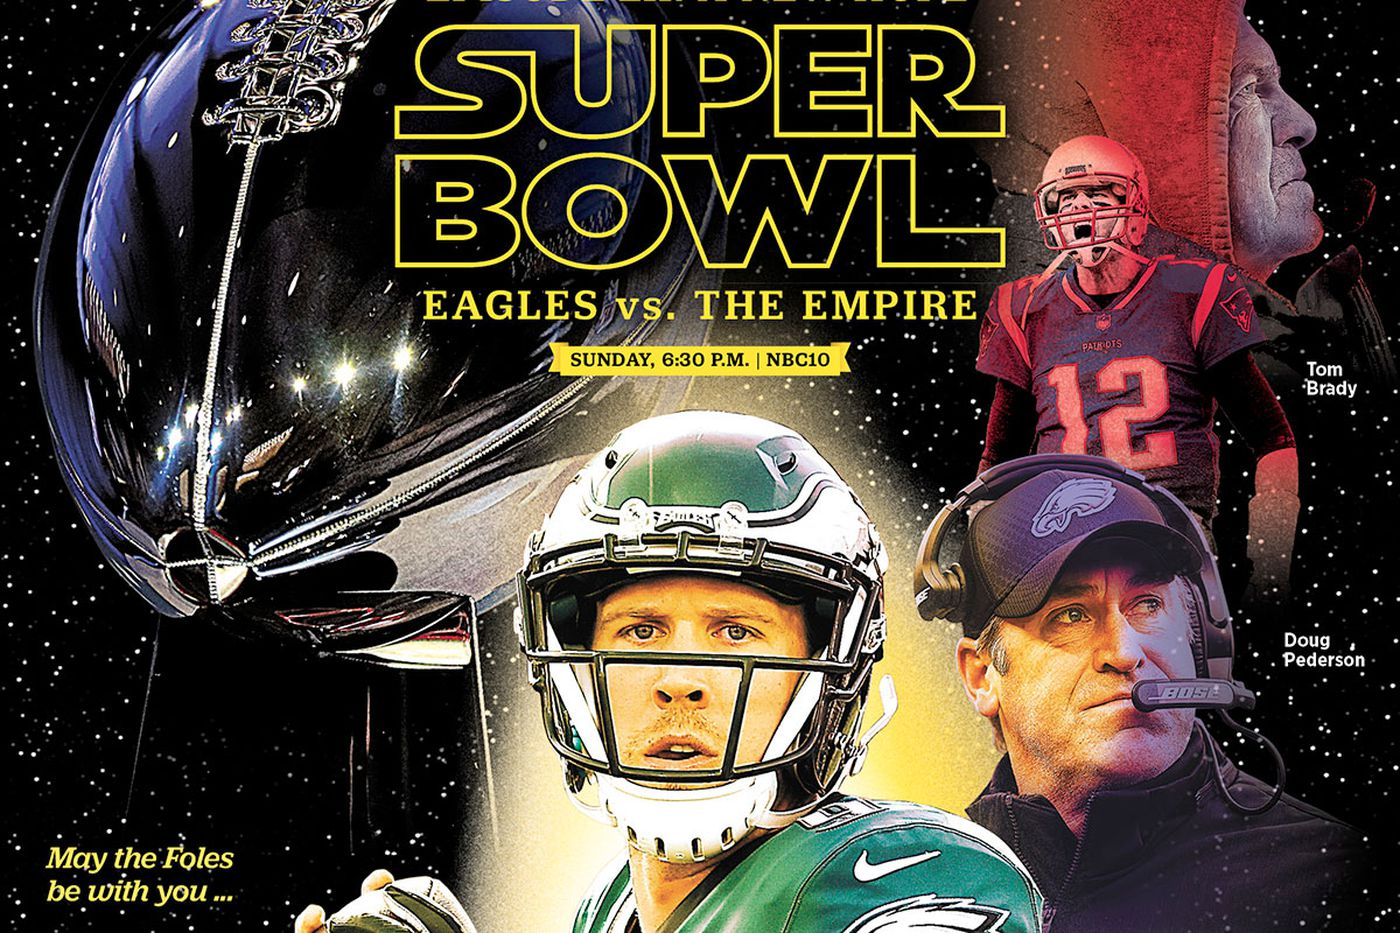 Eagles-Patriots Super Bowl 2018: Get our Star Wars-themed special preview section coverage